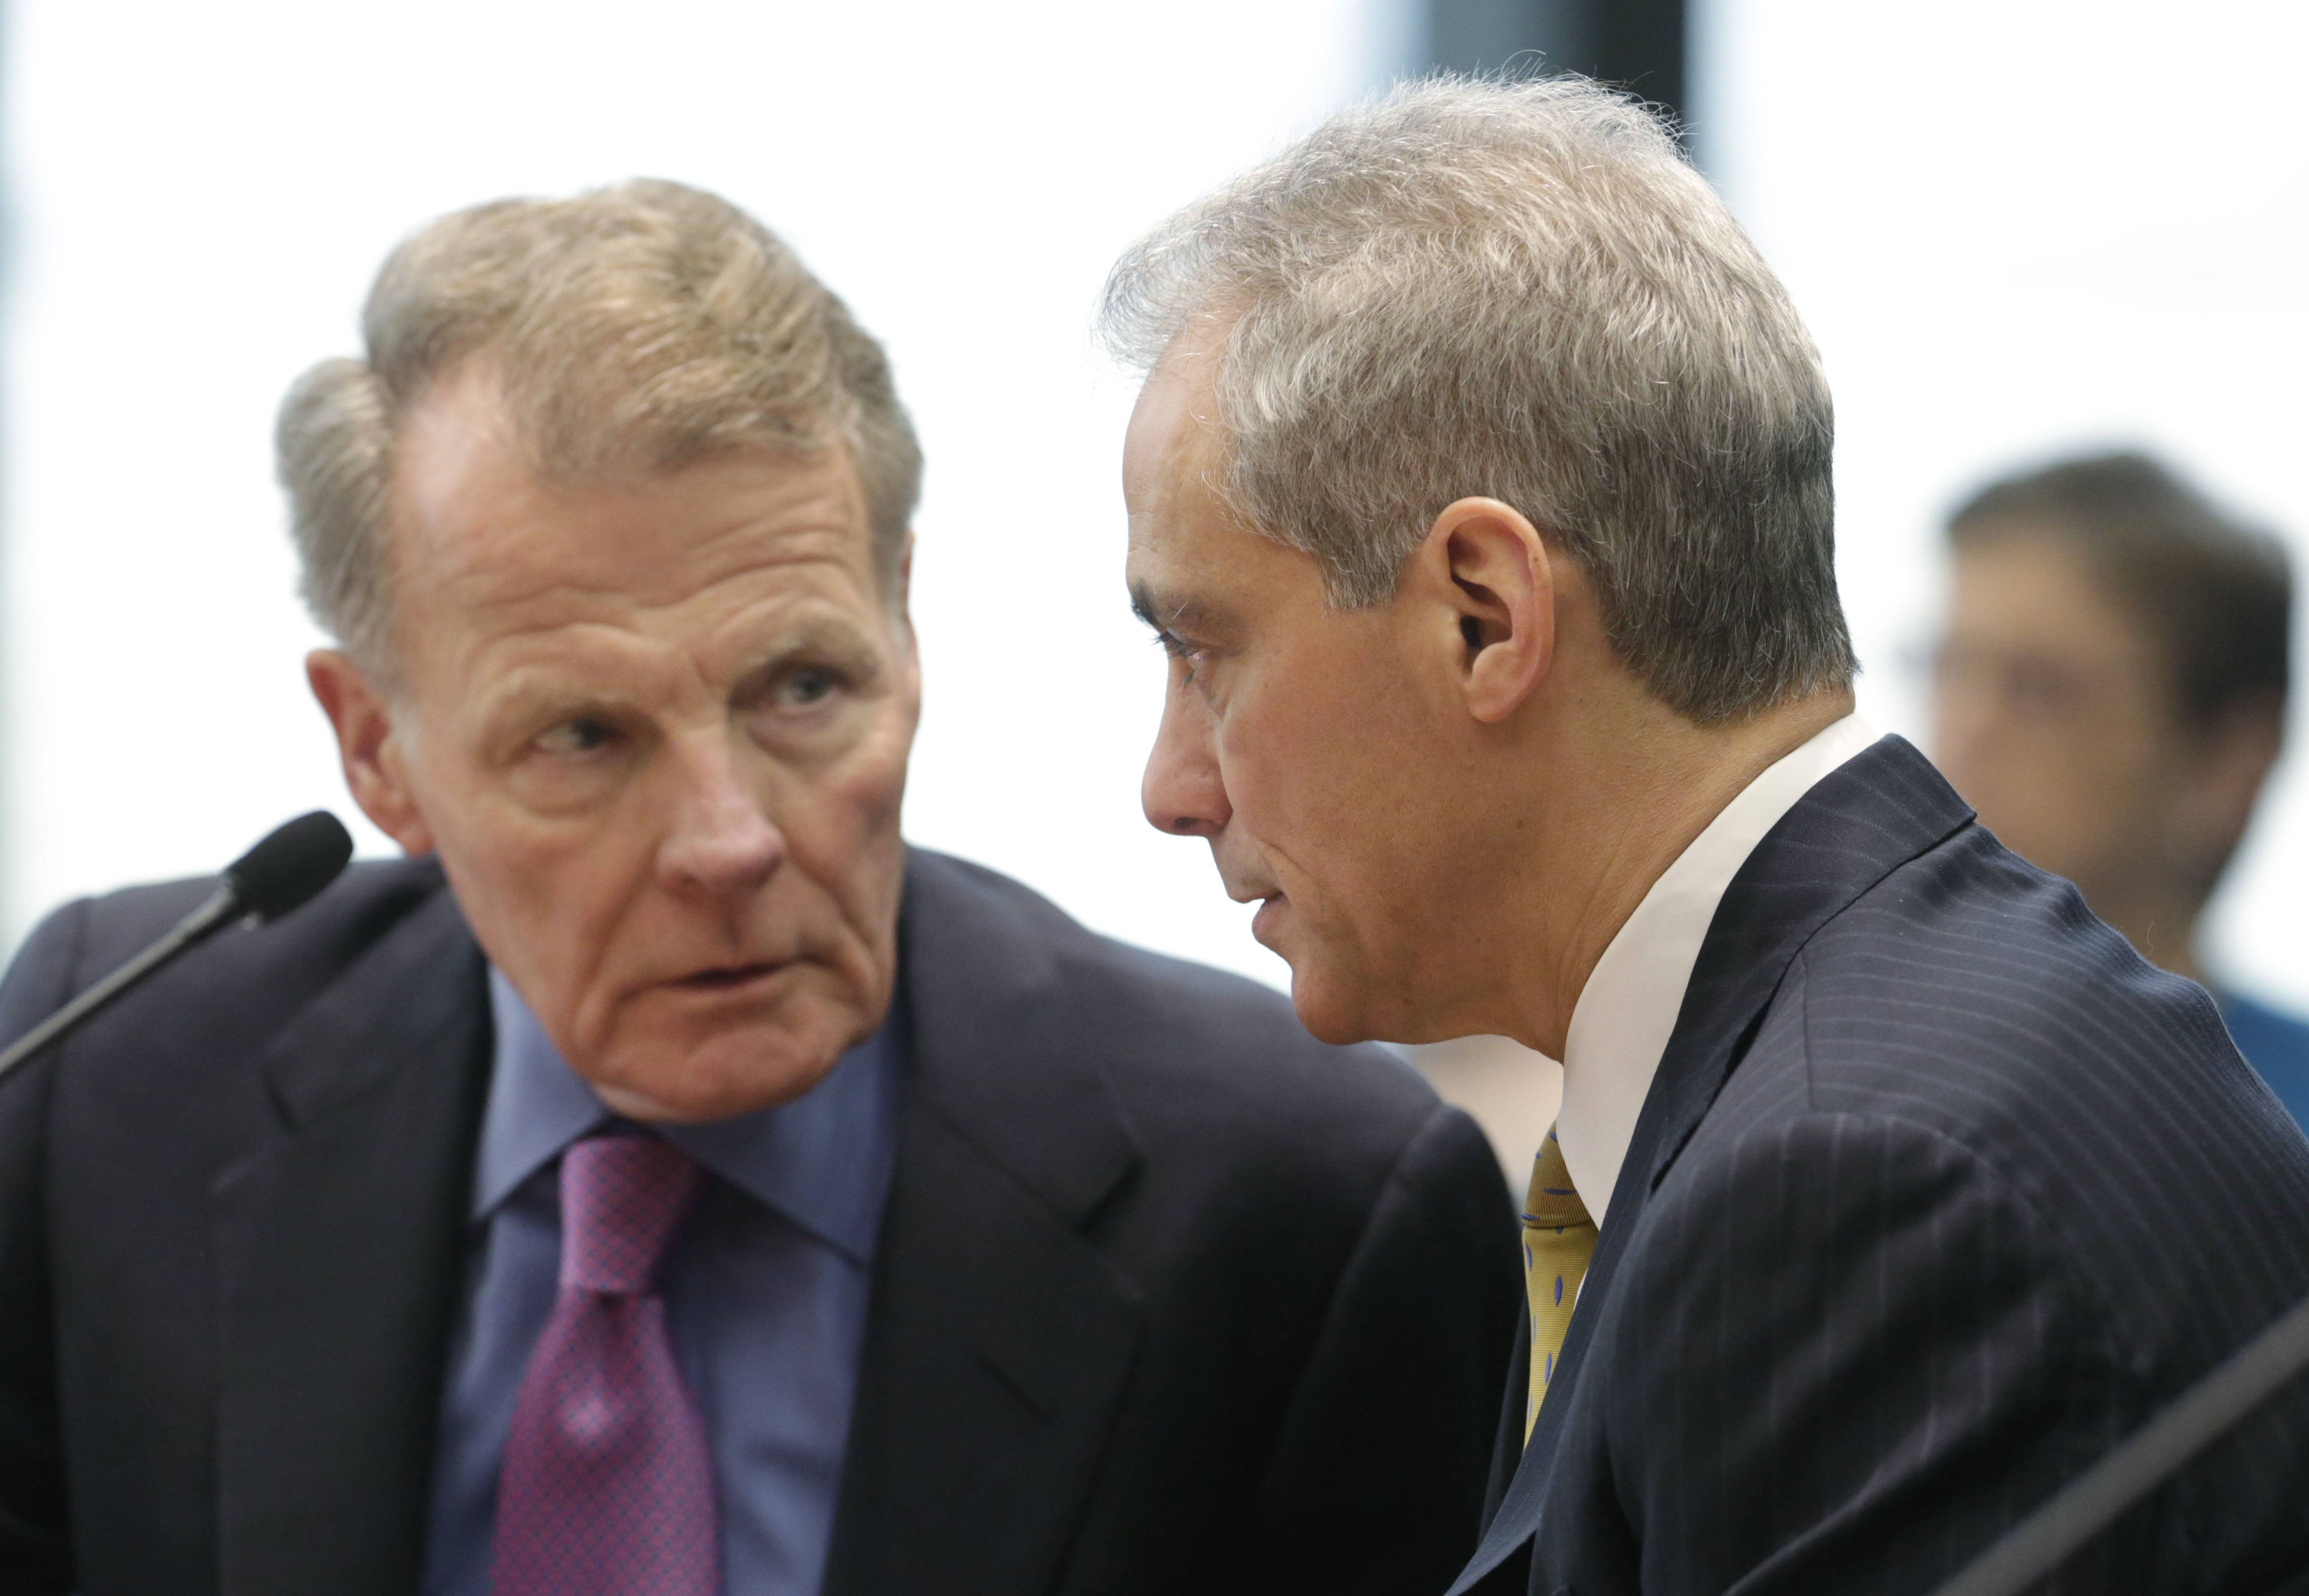 Illinois House Speaker Michael Madigan, left, and Chicago Mayor Rahm Emanuel appear before an Illinois House committee meeting Thursday where both supported a plan to devote $100 million in state funds to help bring President Barack Obama's presidential museum and library to Chicago.